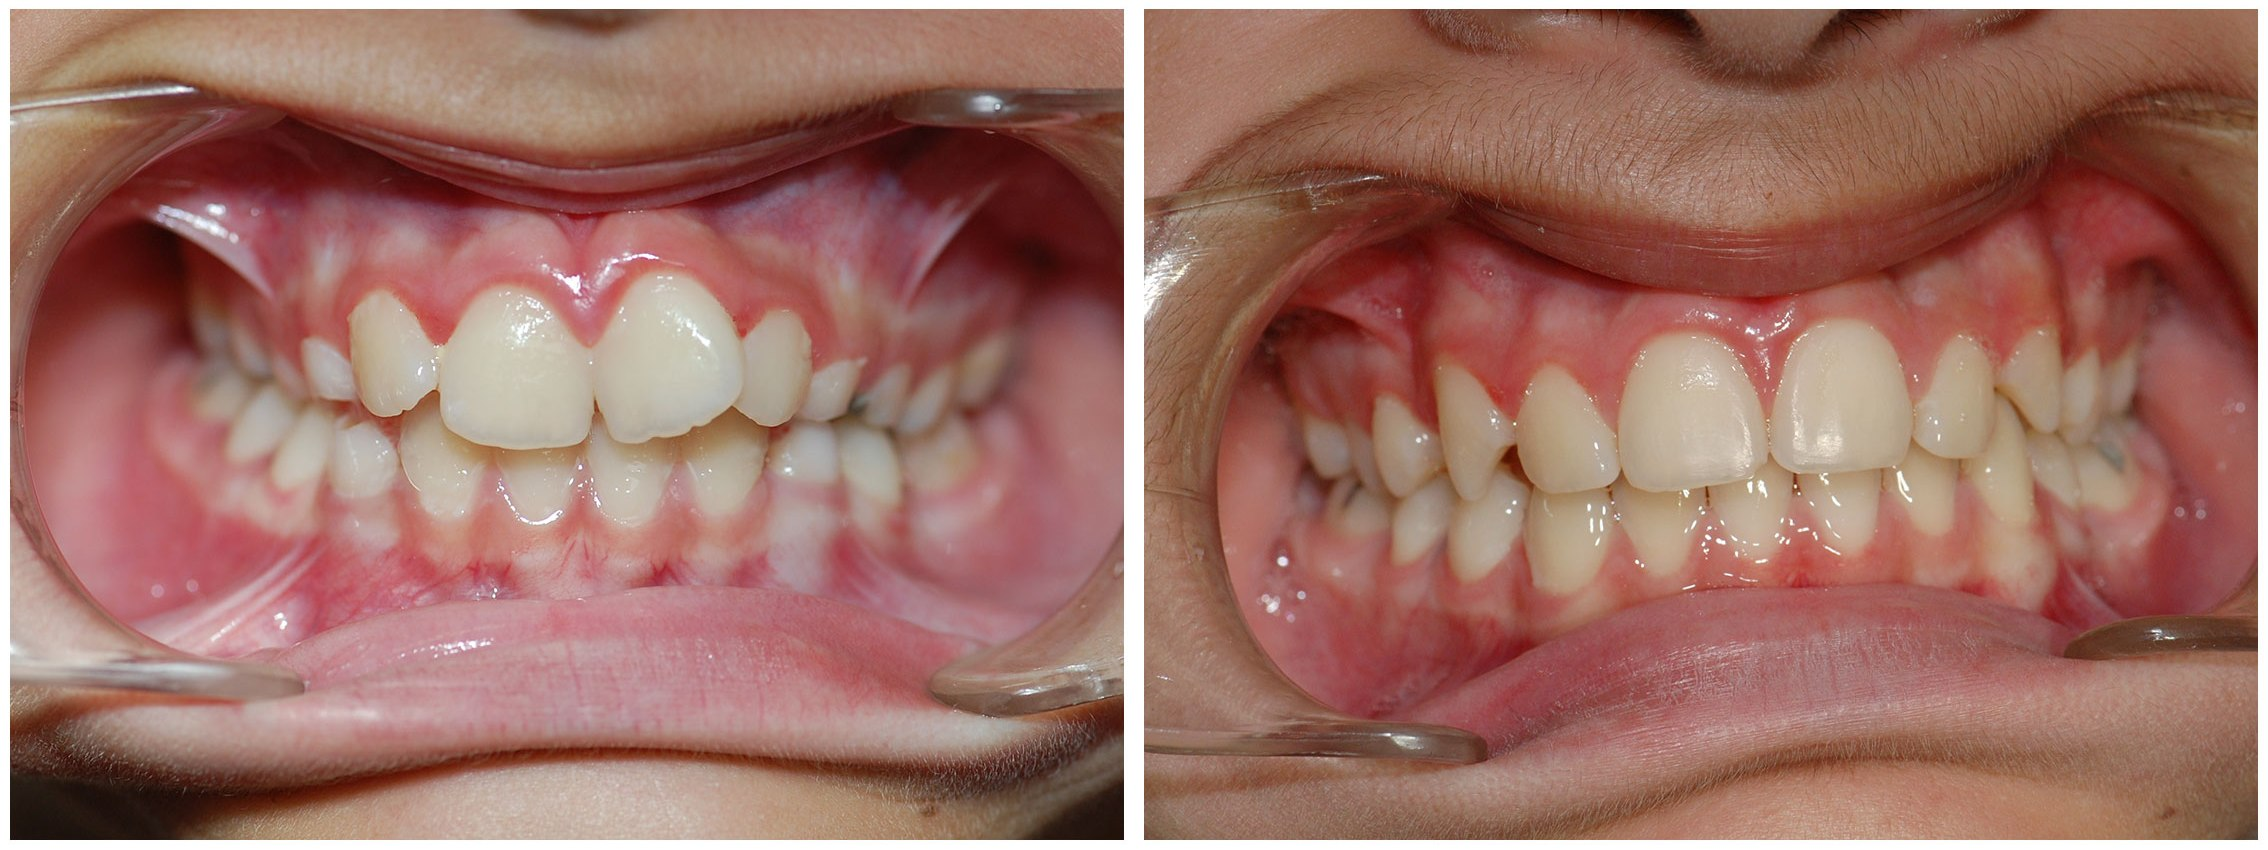 Pedodontist Dental Braces Before & After